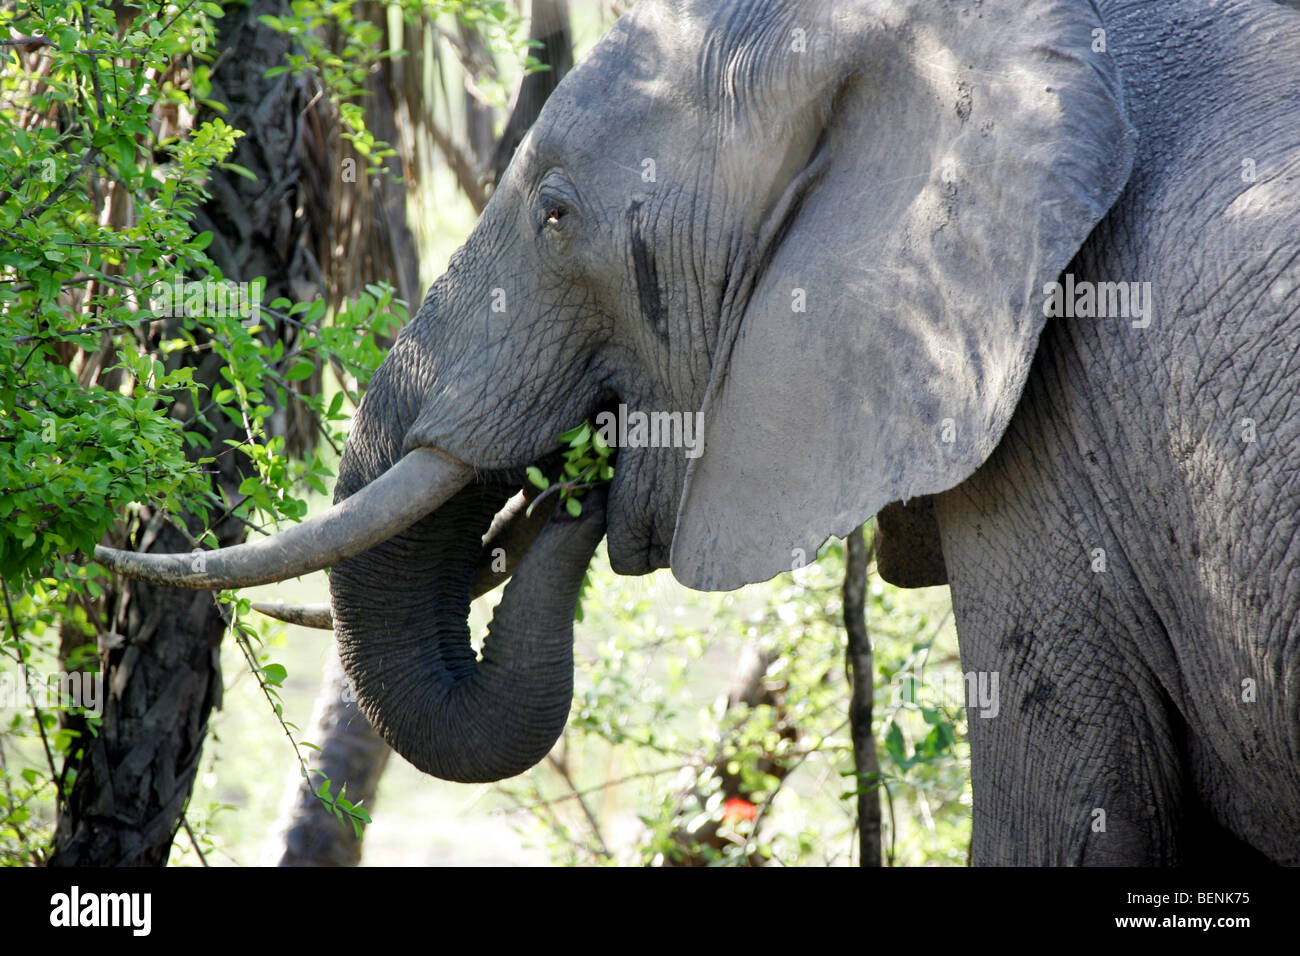 Encounter with an African Elephant in the Selous Game Reserve in Tanzania Stock Photo